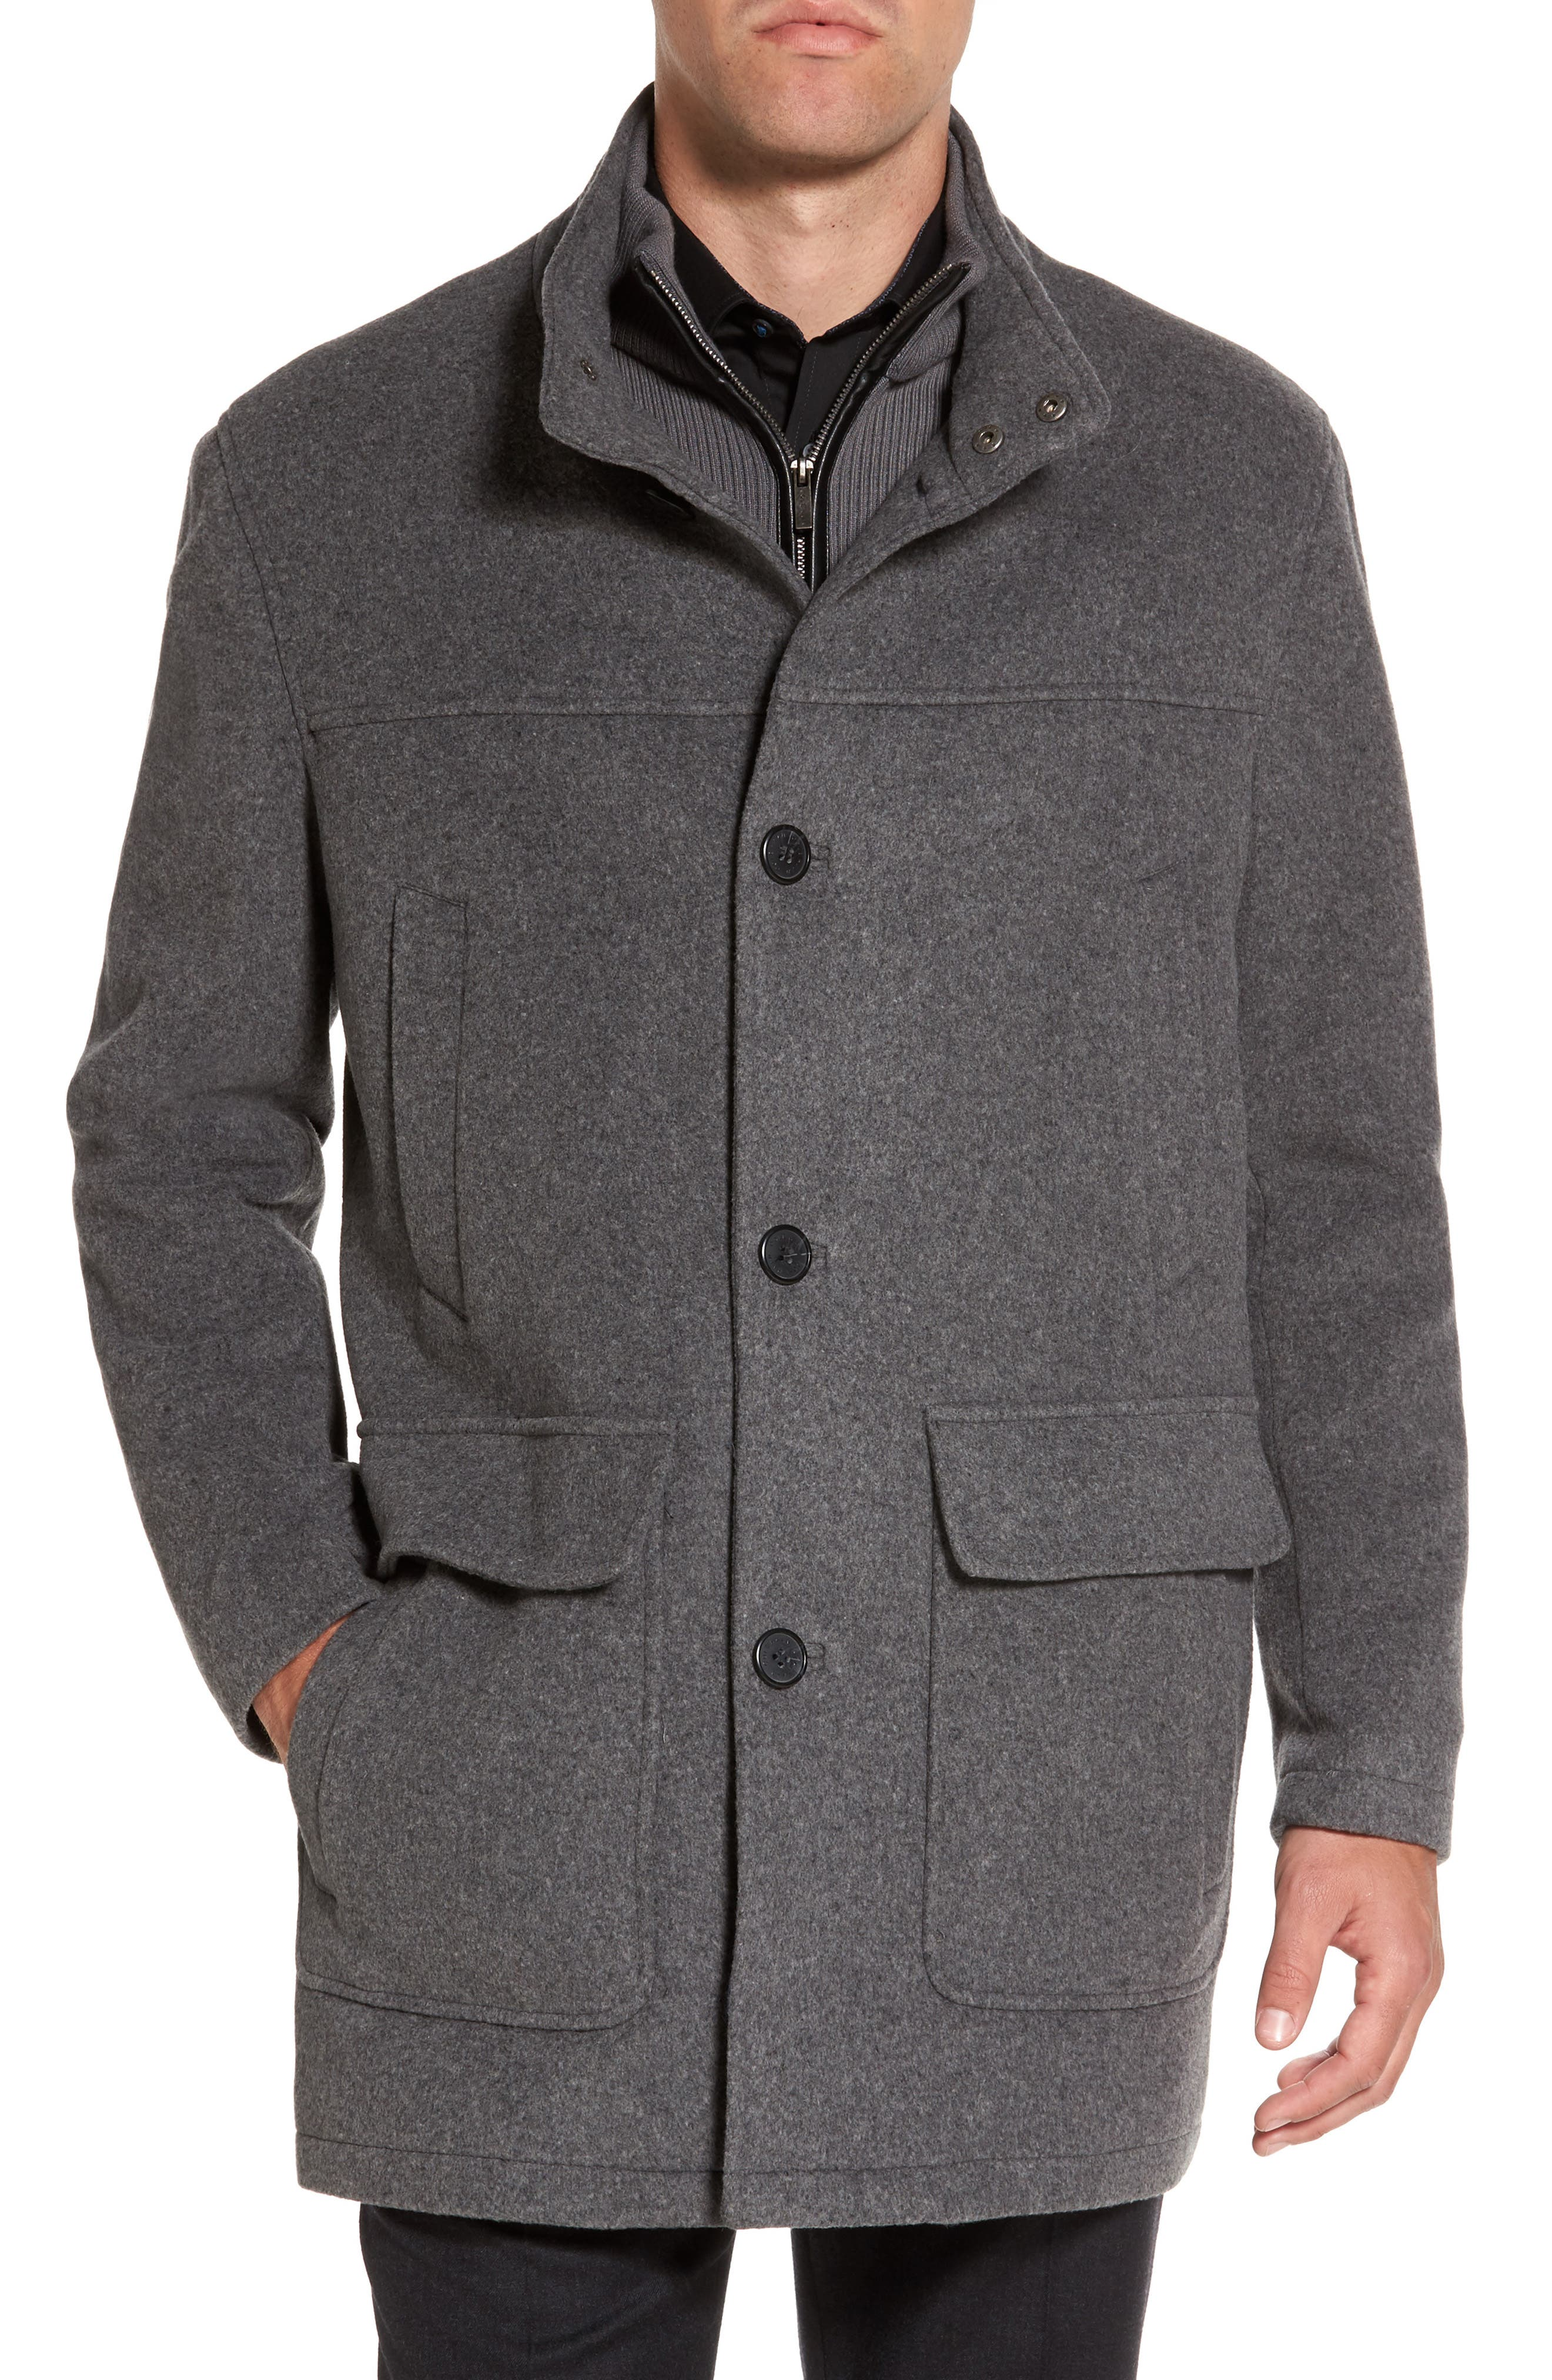 Wool Blend Topcoat with Inset Bib,                             Main thumbnail 4, color,